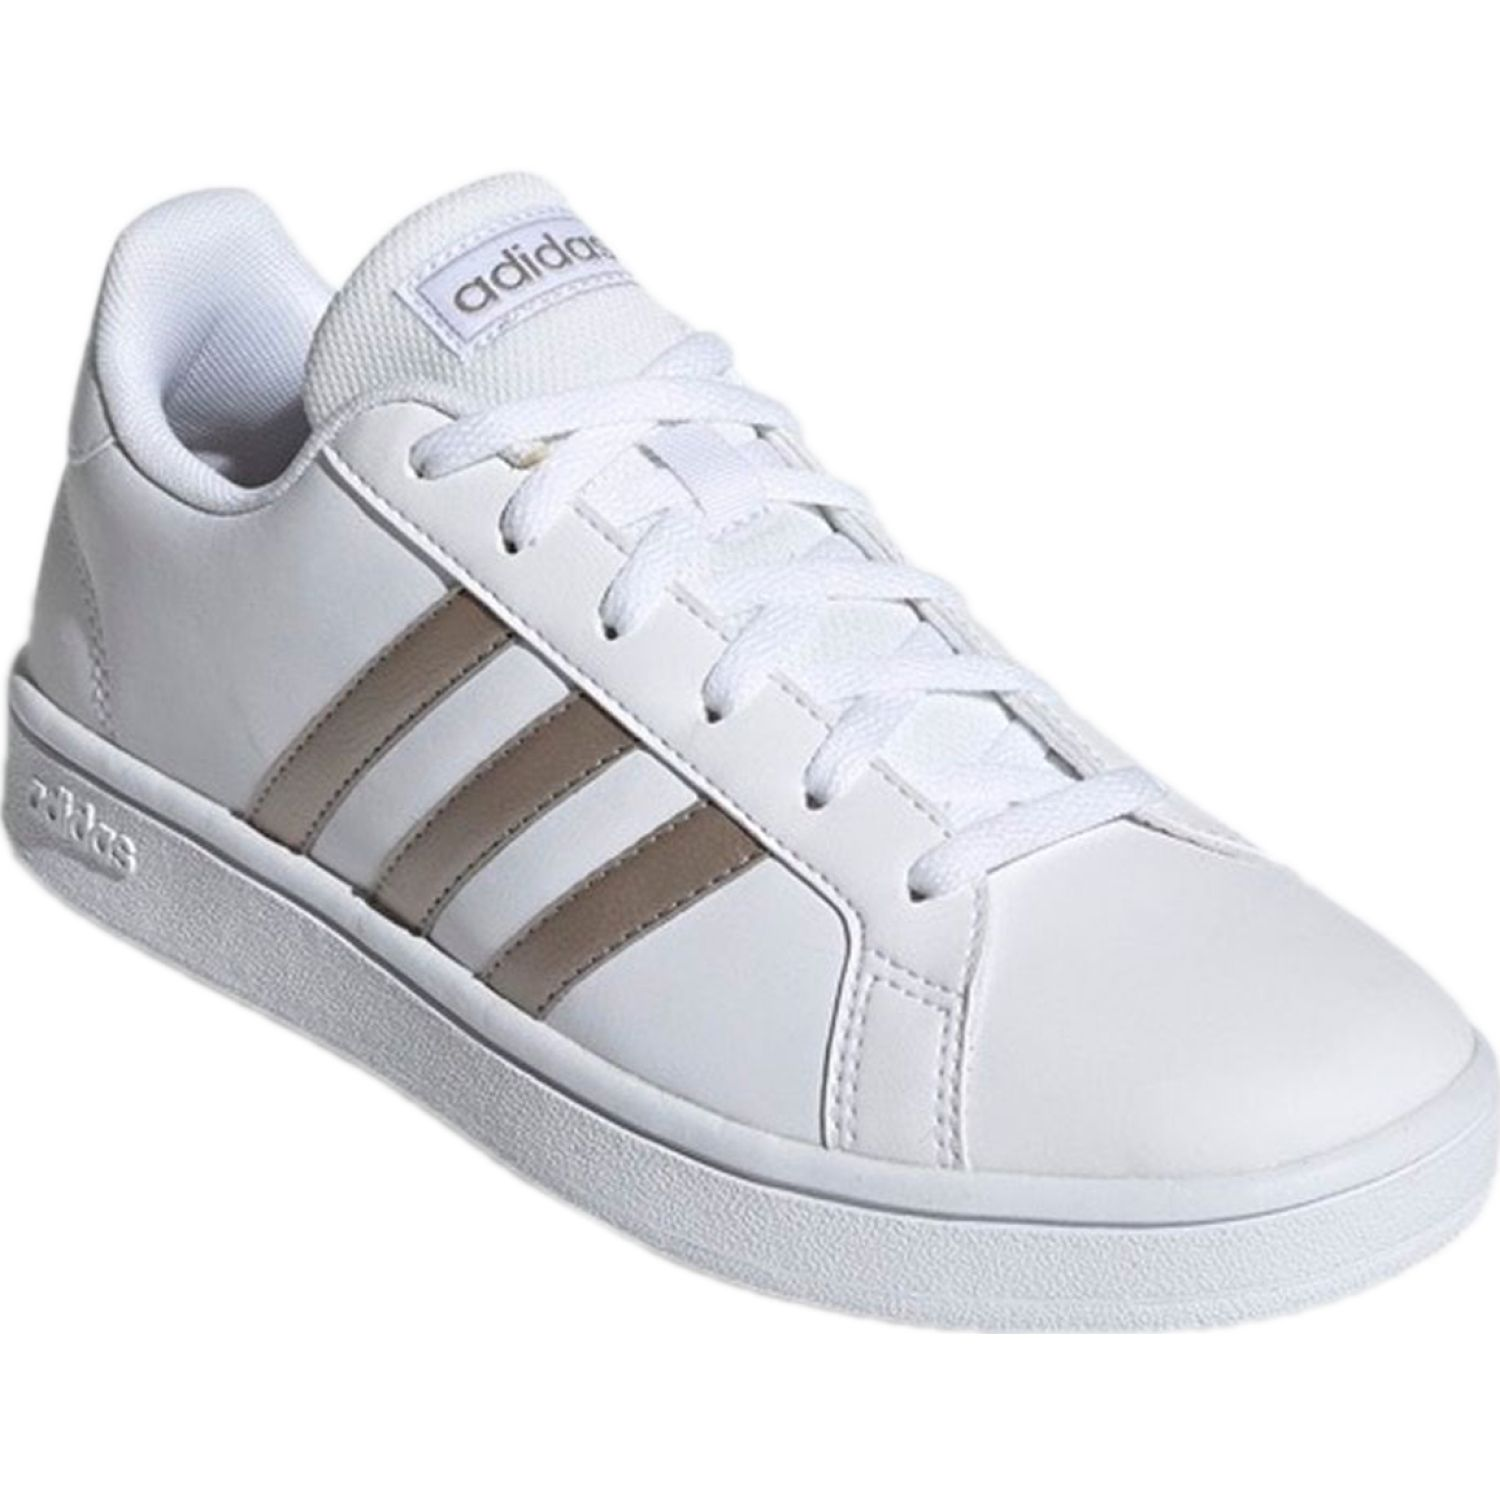 Adidas GRAND COURT BASE Blanco / dorado Mujeres